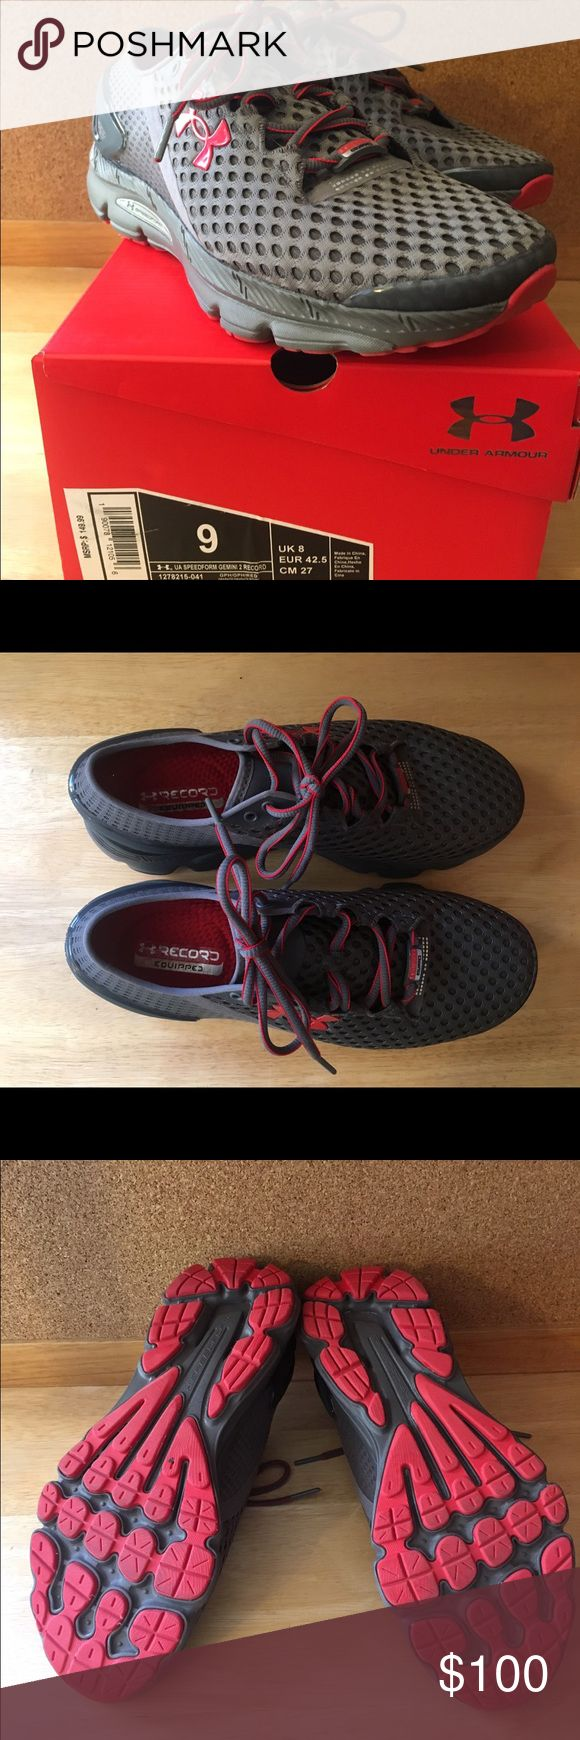 UNDER ARMOUR Men's Running shoes Brand New in Box Under Armour Speedform Gemini 2 Record. Worn a total of 3 miles on treadmill. Never activated. Gray and red. Under Armour Shoes Athletic Shoes